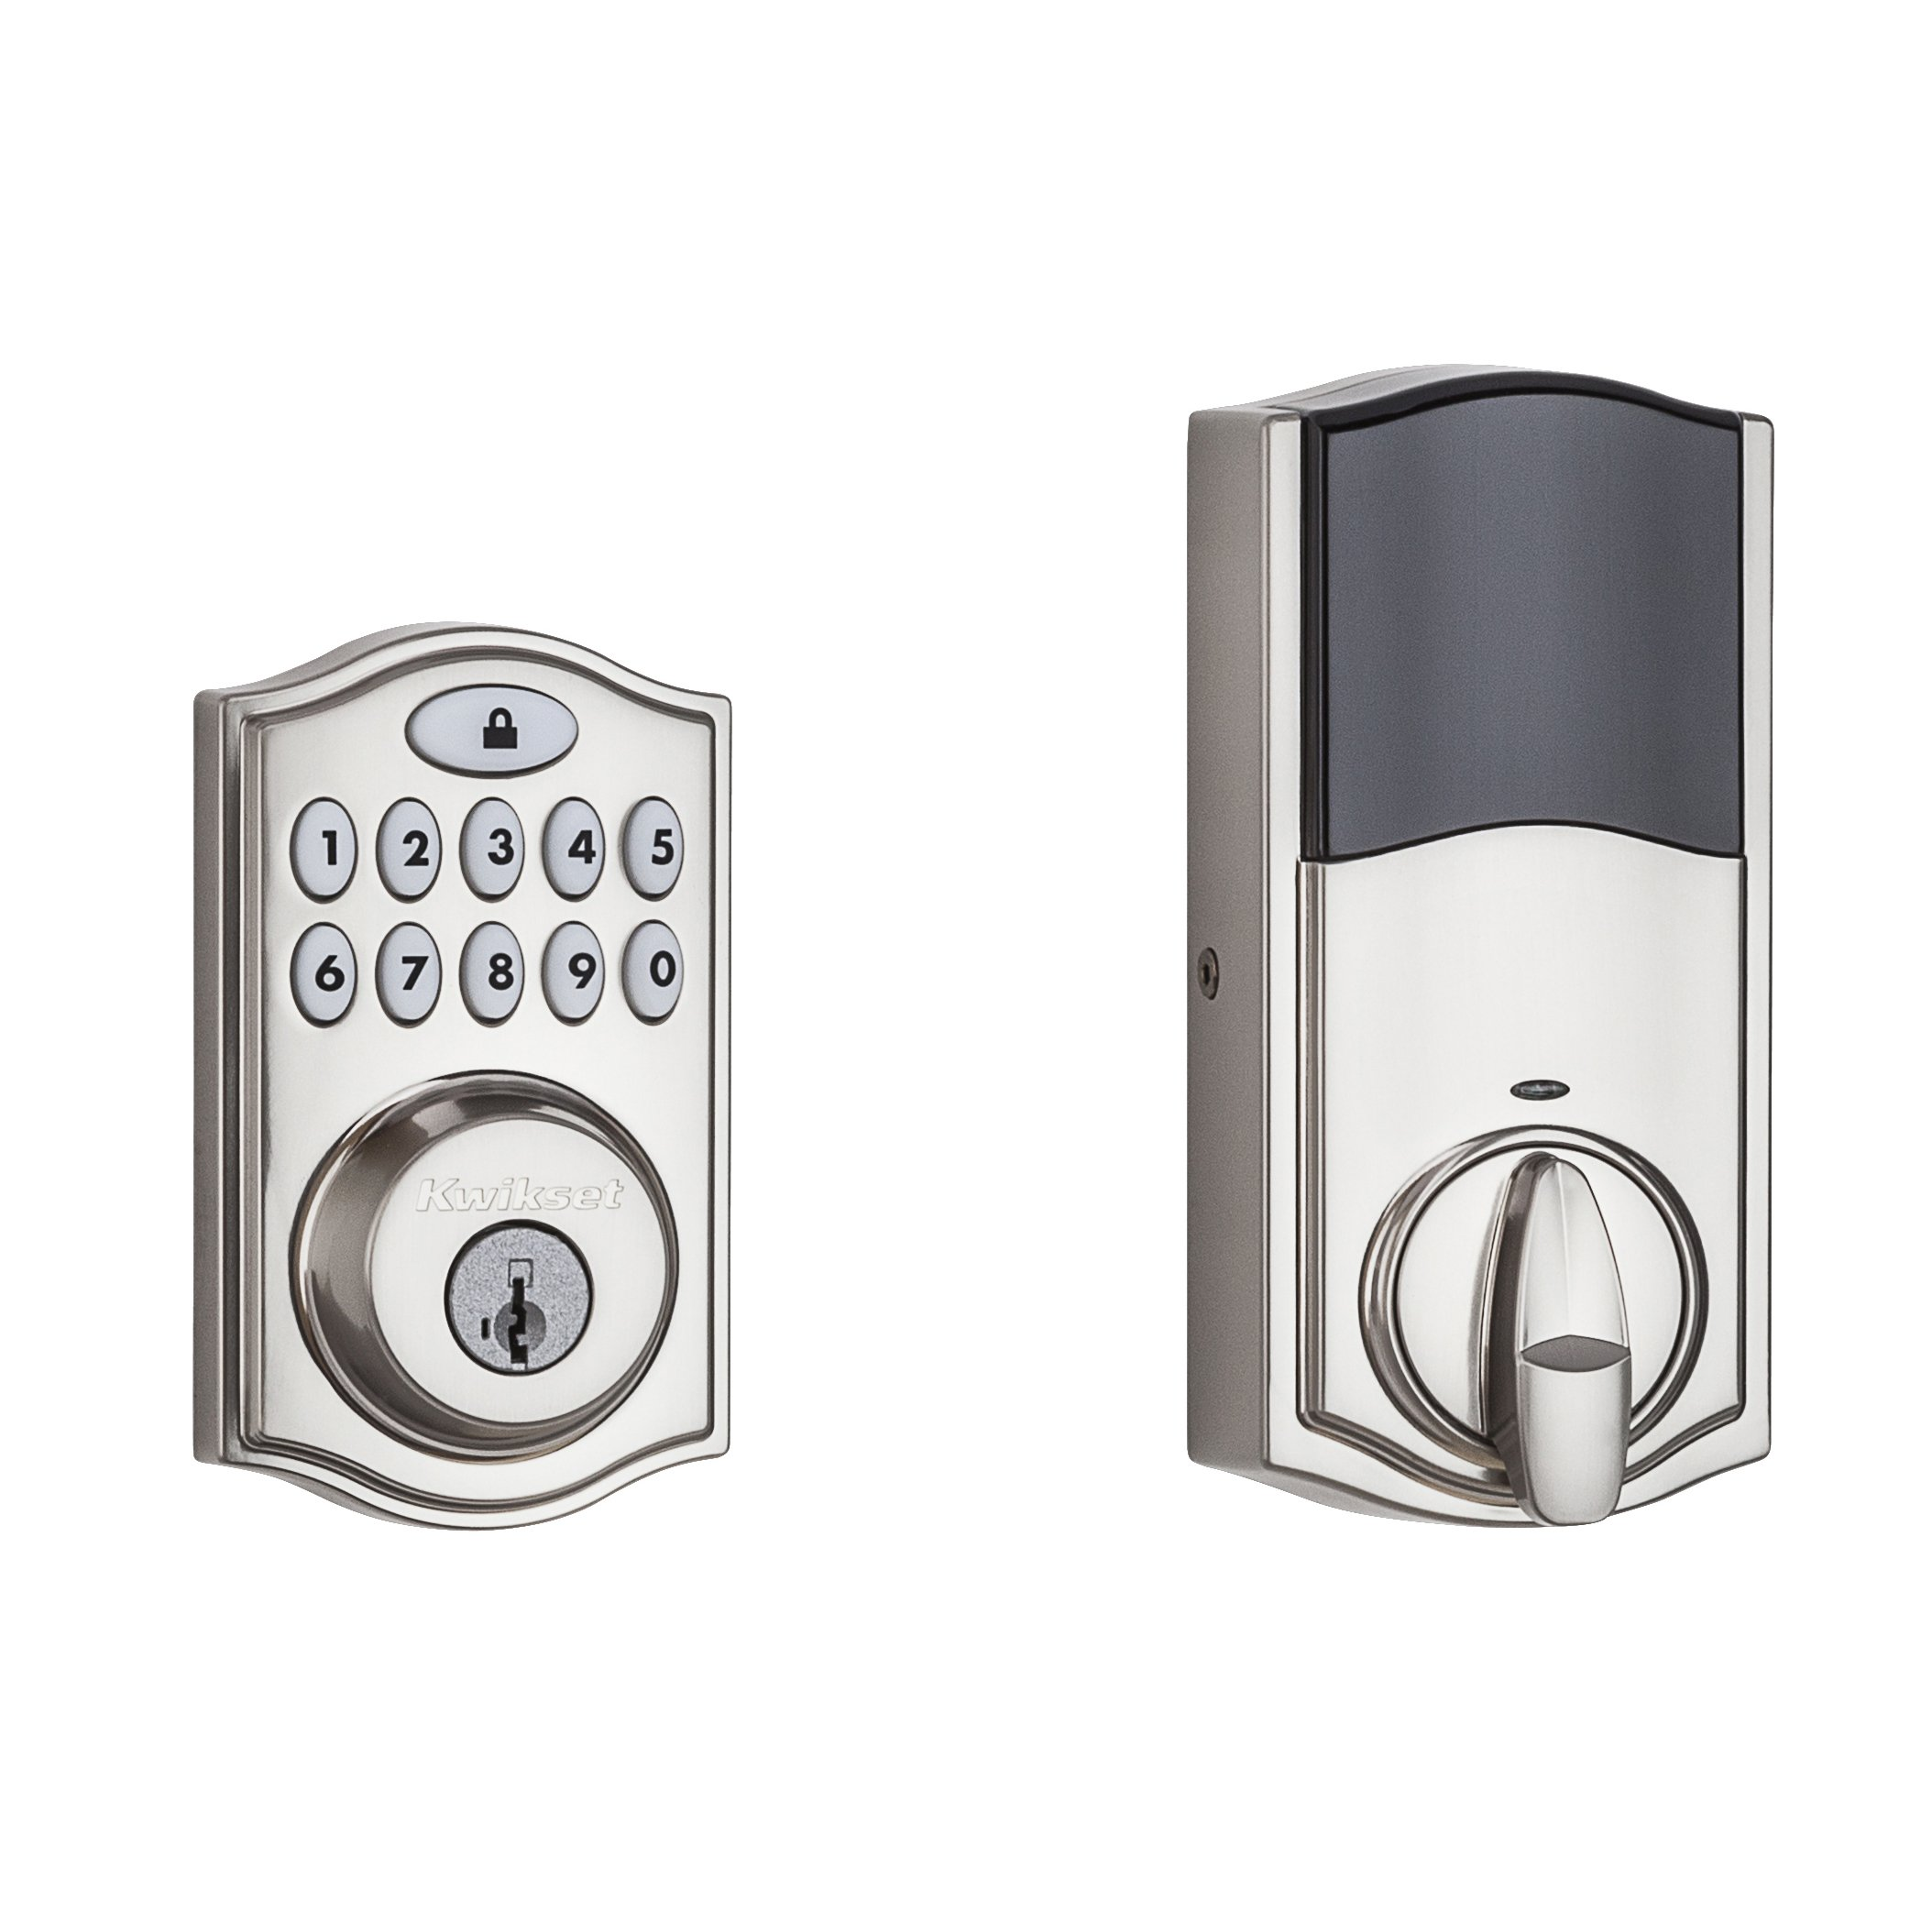 Kwikset 914 Z-Wave SmartCode Electronic UL Deadbolt, Works with Amazon Alexa via SmartThings, Wink, or Iris featuring SmartKey in Satin Nickel